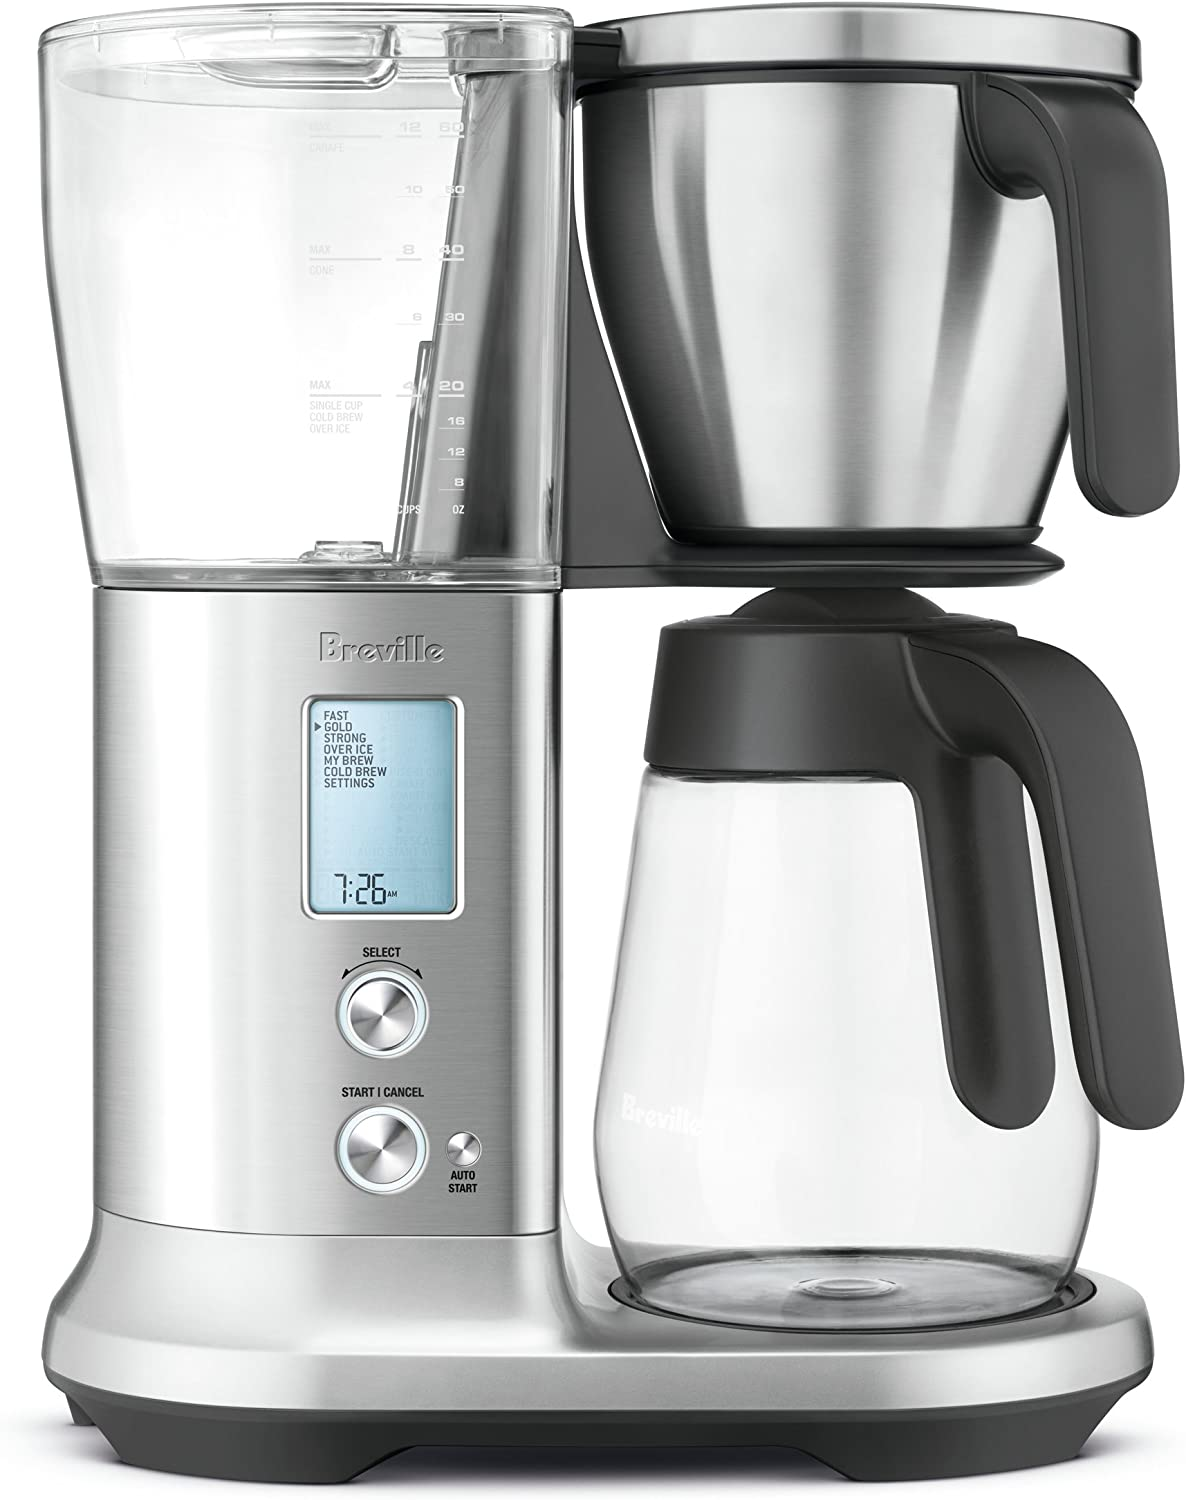 Breville BDC400BSS Precision Brewer Coffee Maker with Glass Carafe, Brushed Stainless Steel